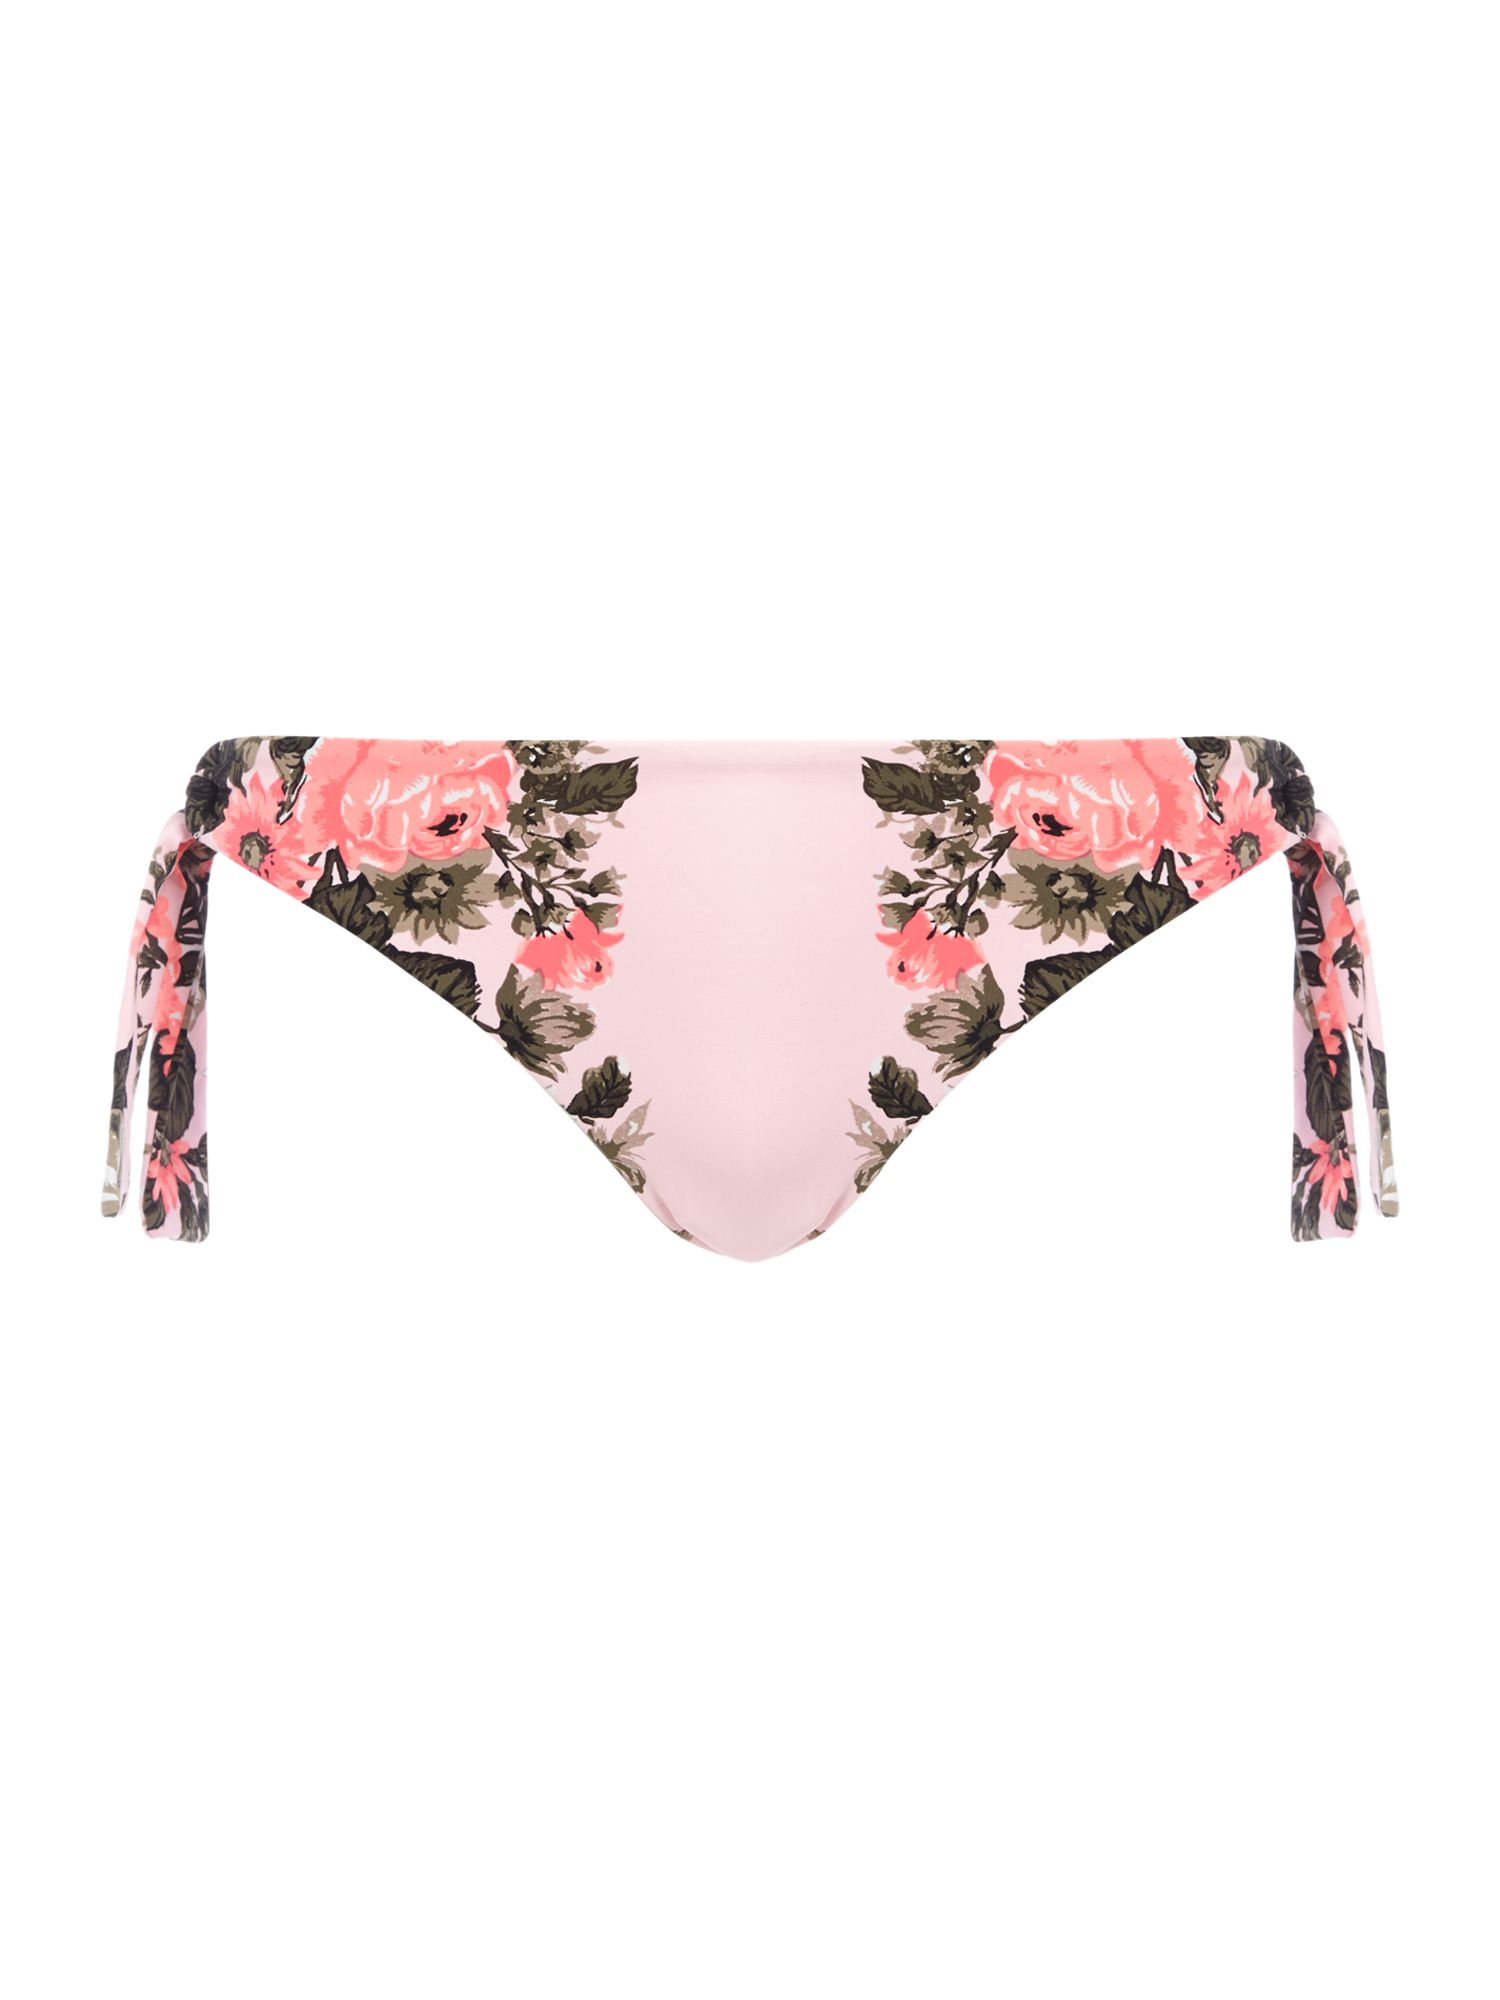 Bella rose tie side brief